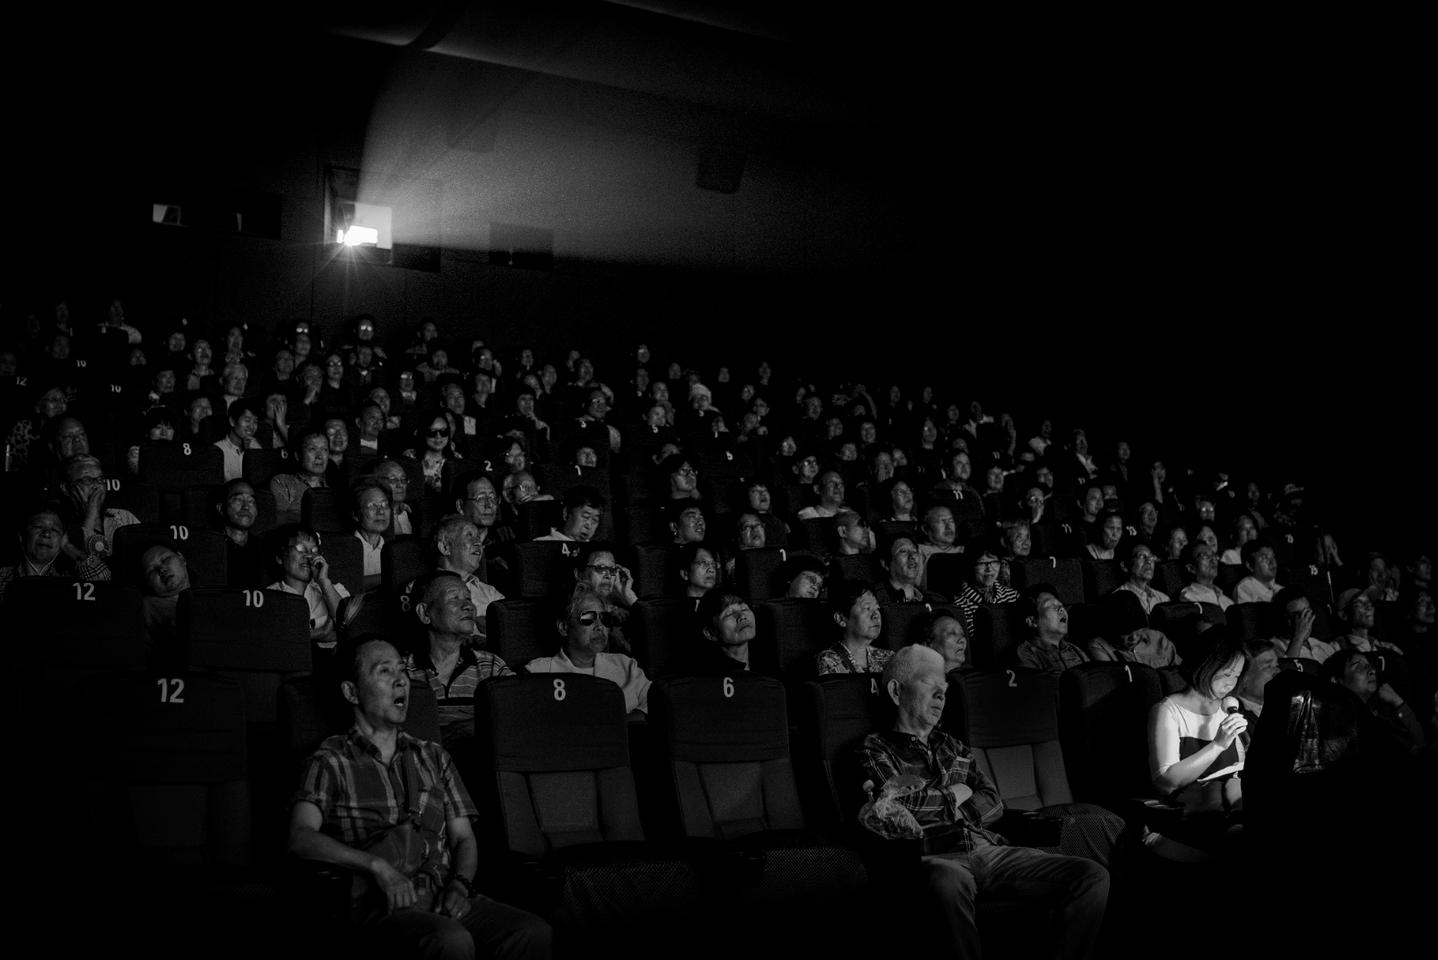 Visually impaired people attend a movie theater in Shanghai